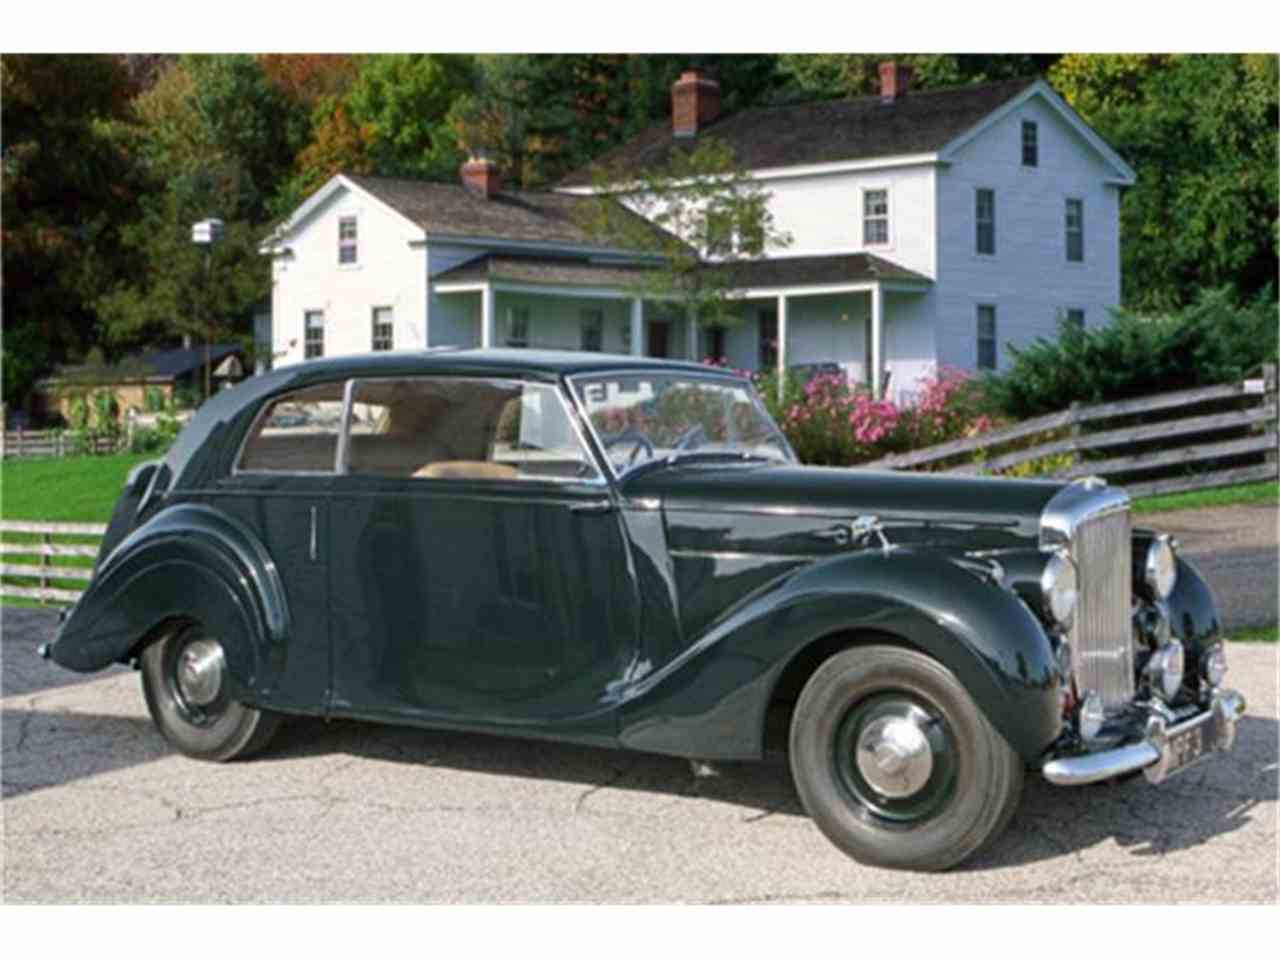 1948 Bentley Mark IV 2 door James Young Coupe for Sale ...